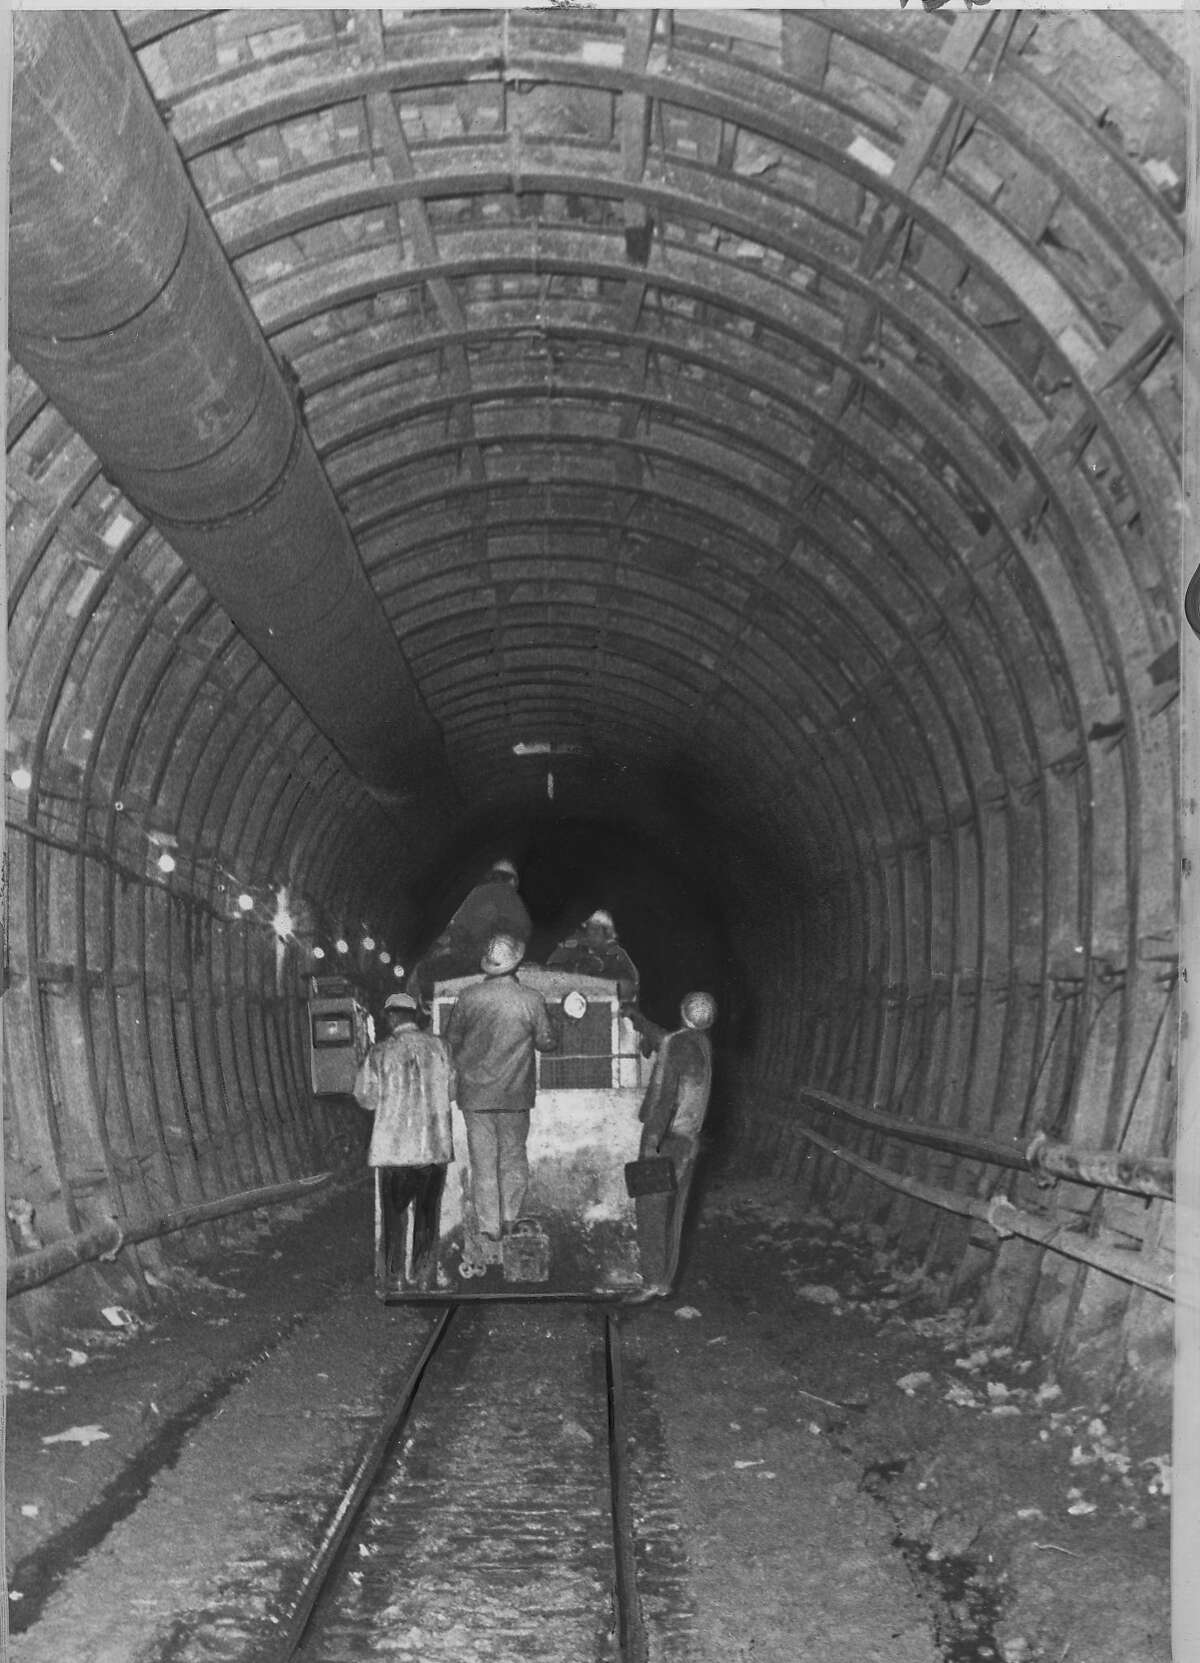 Construction work on BART's Trans-Bay tunnel Photo dated 03/07/1966 p. 8